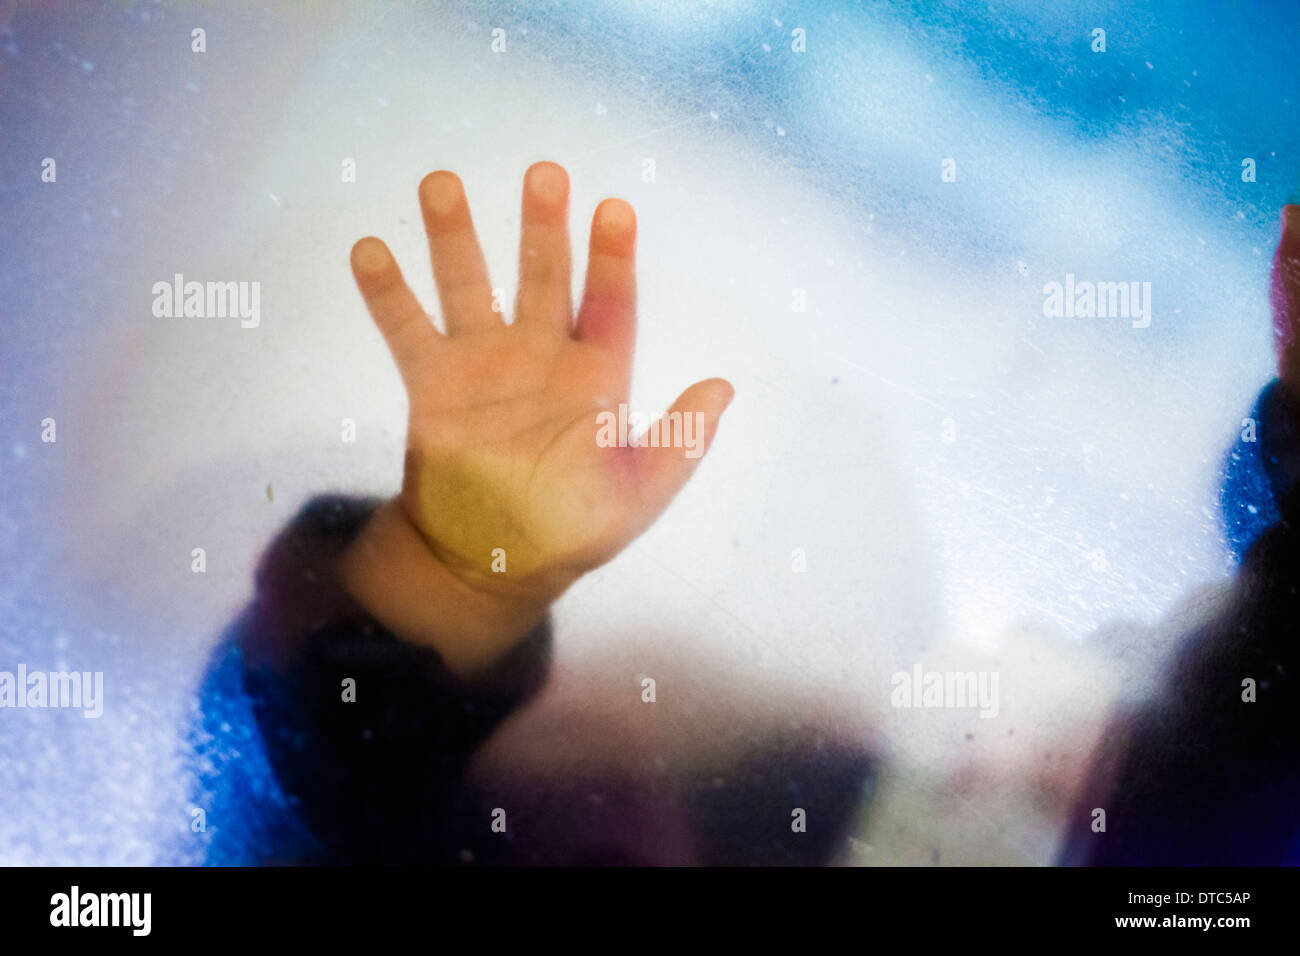 Toddler girl's hand touching glass - Stock Image